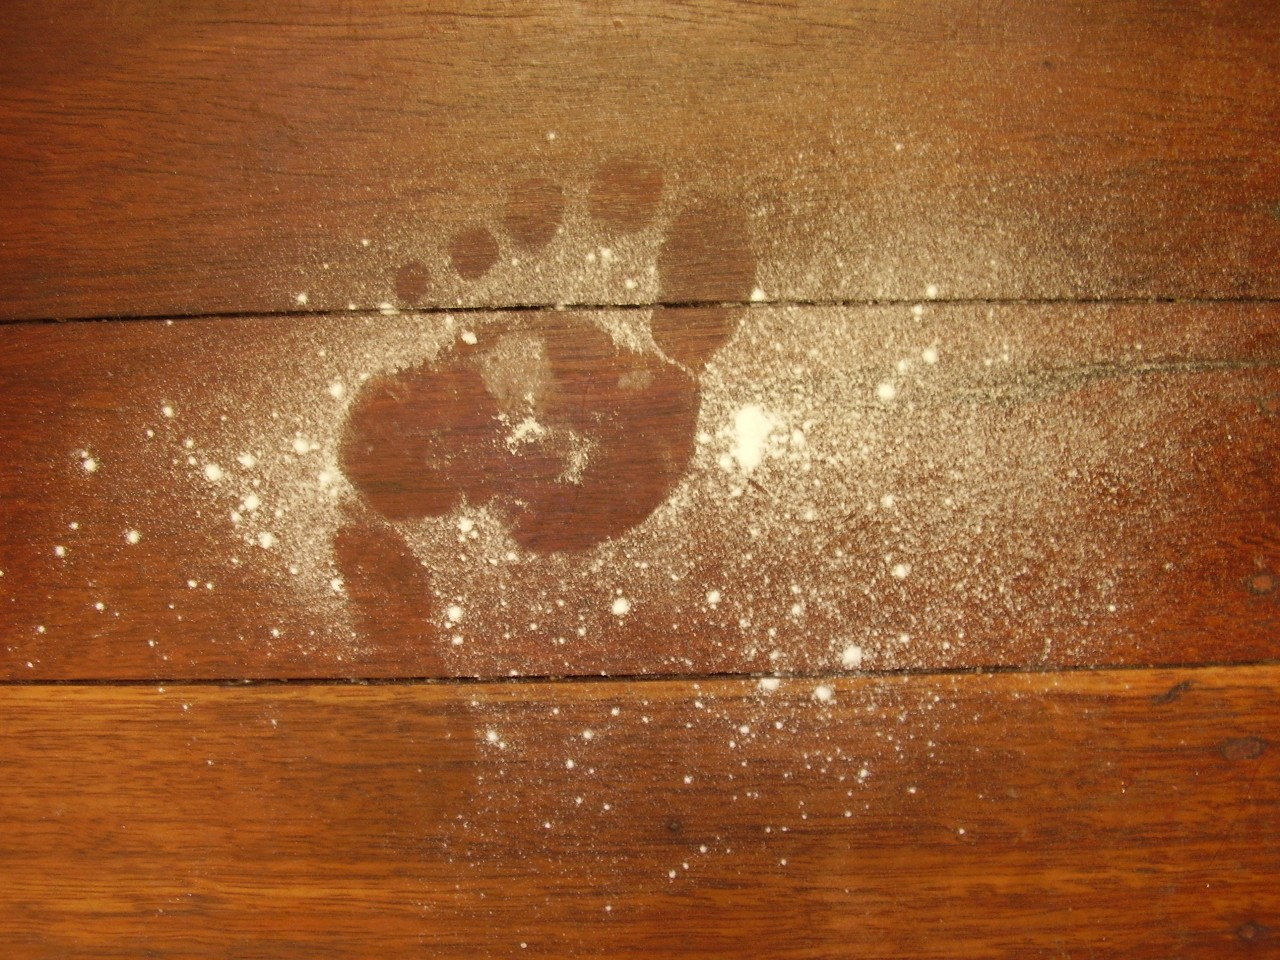 footprint in flour